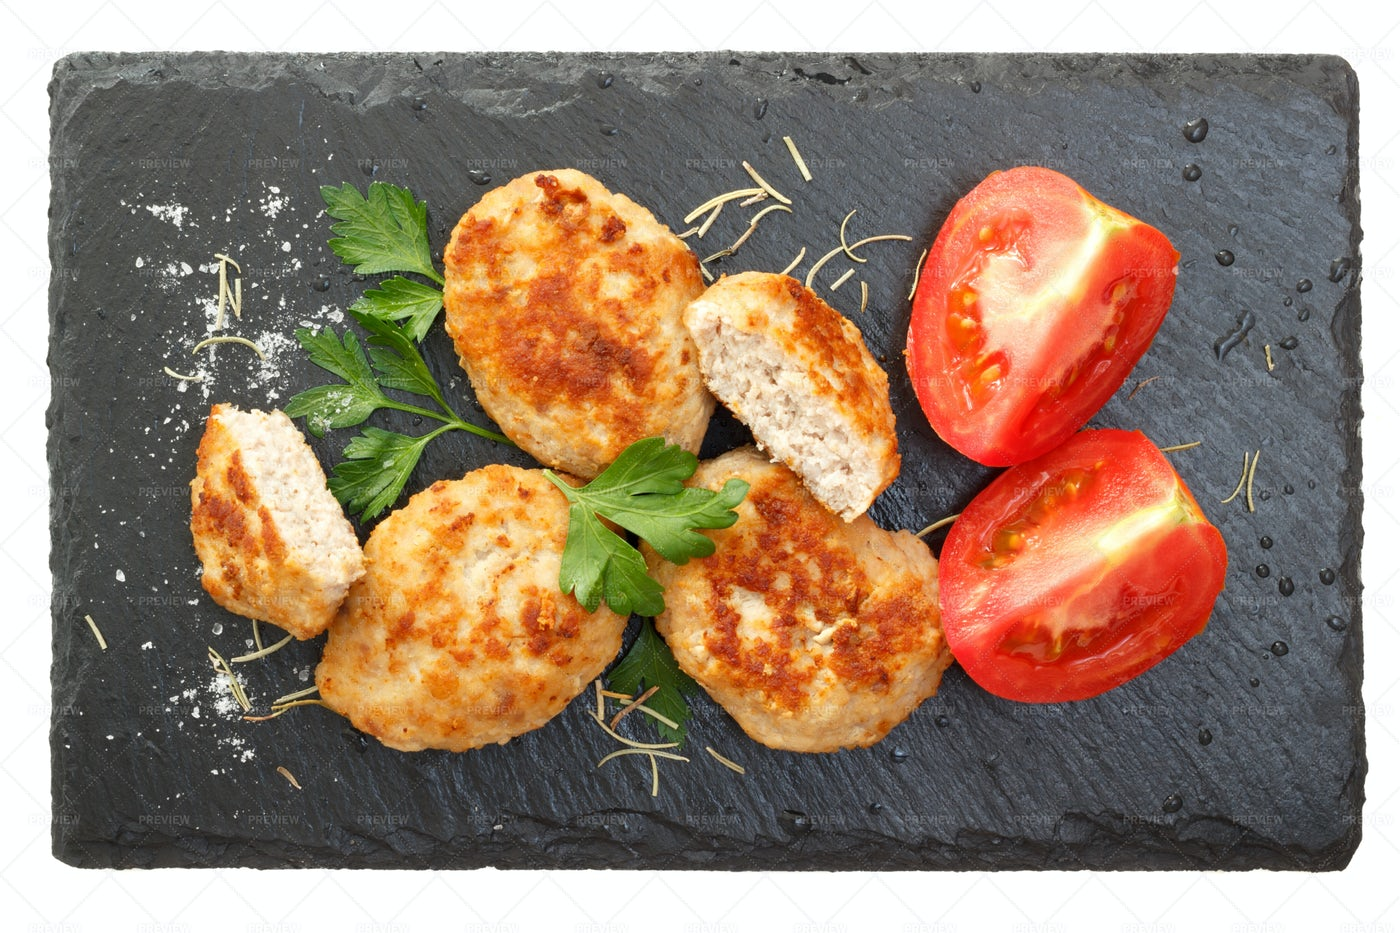 Cutlets On A Plate: Stock Photos